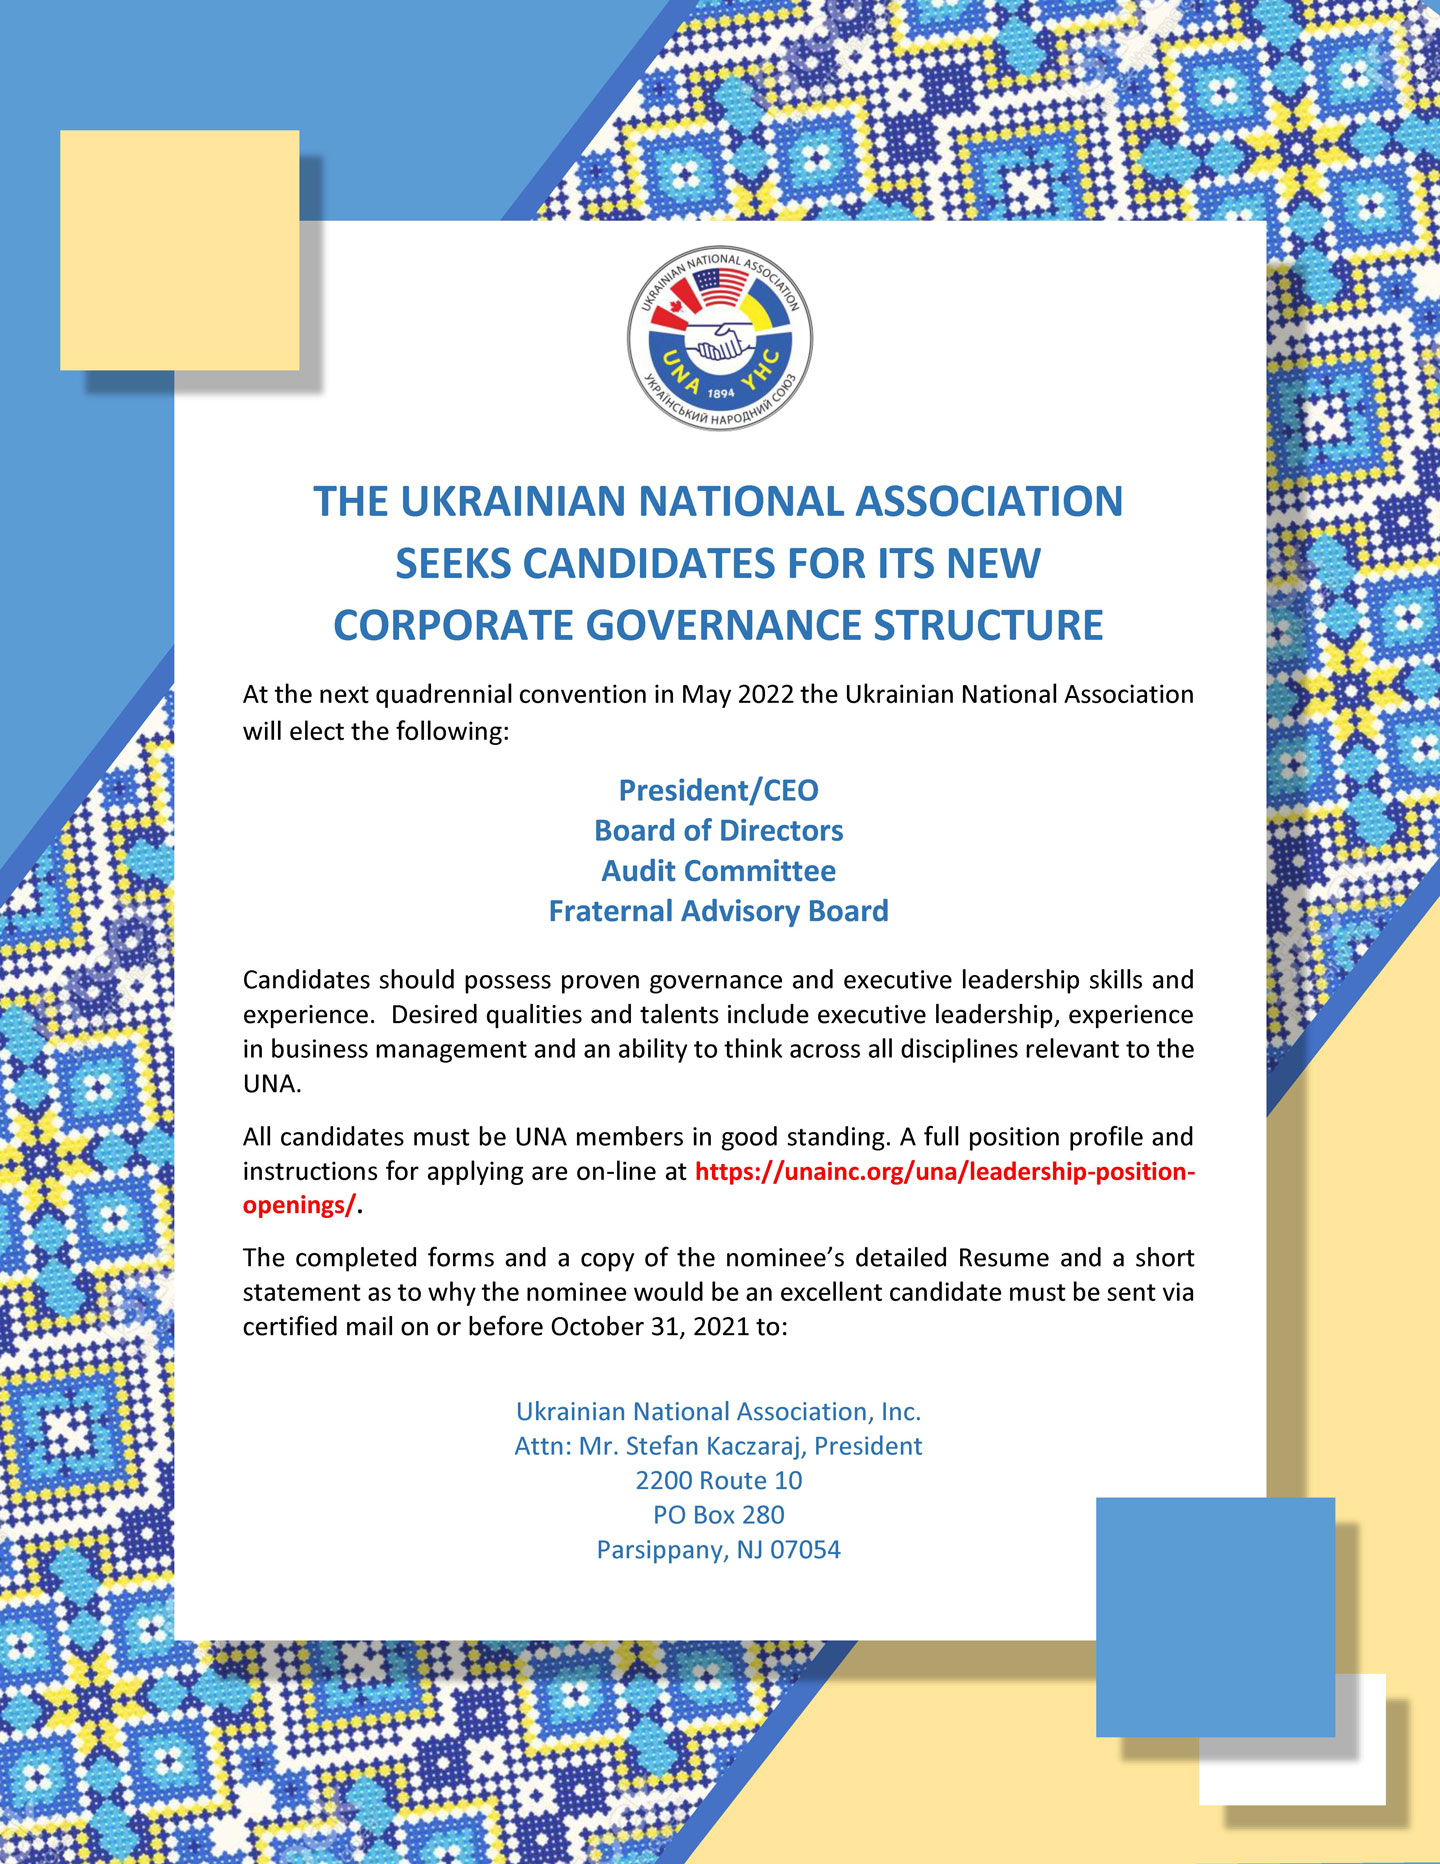 The Ukrainian National Association Seeks Candidates For Its New Corporate Governance Structure